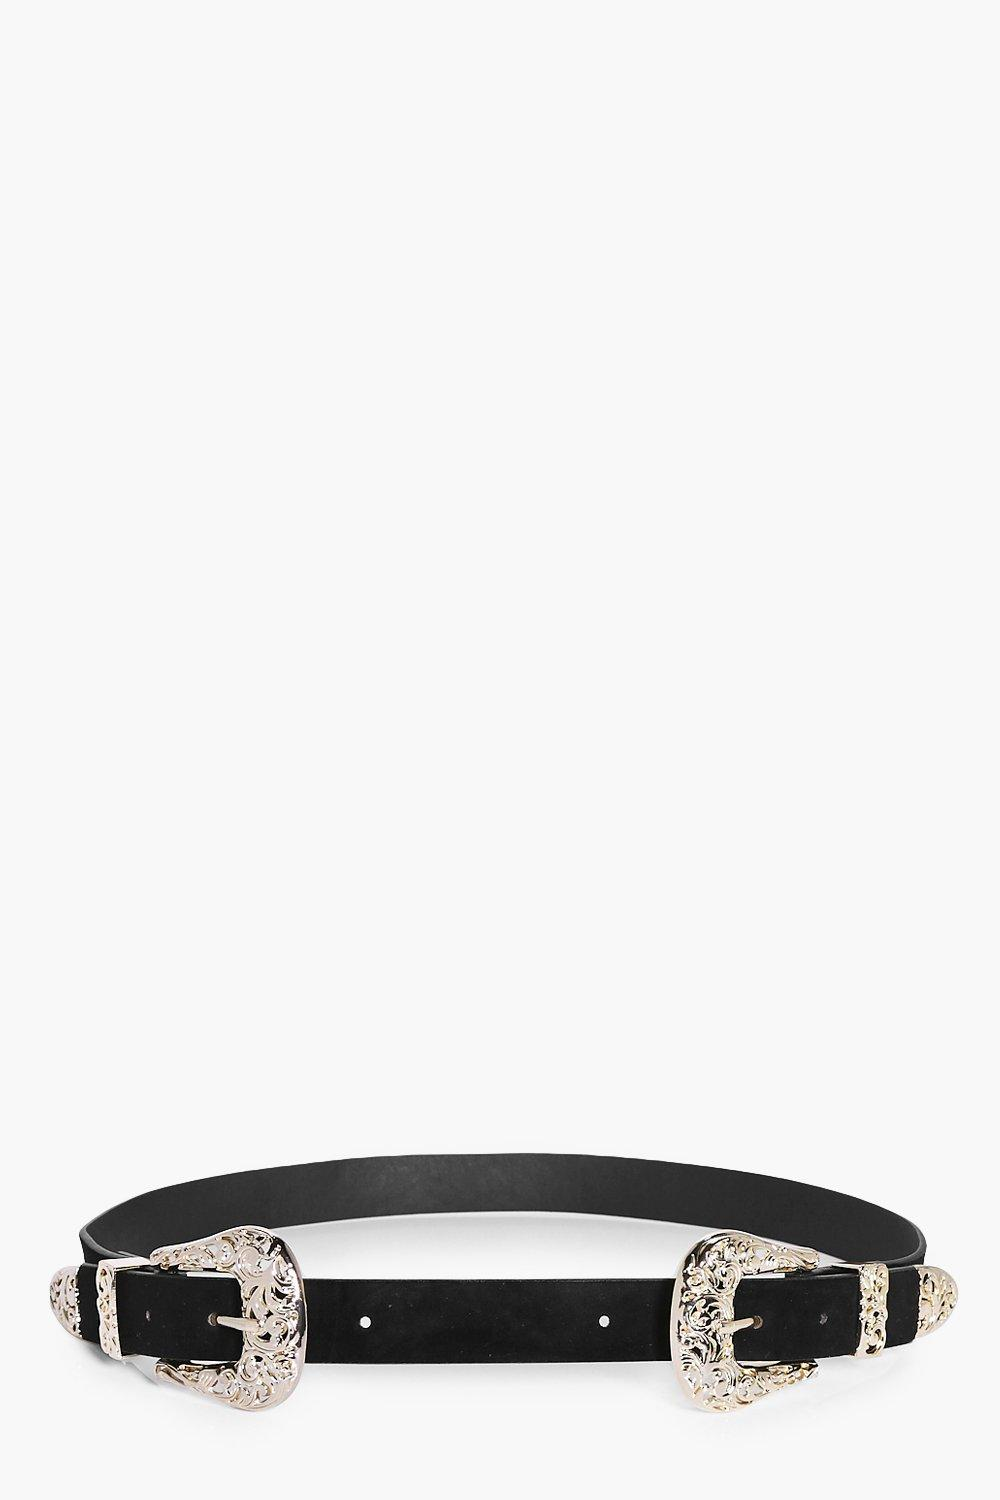 Filigree Double Buckle Western Belt - black - Orla